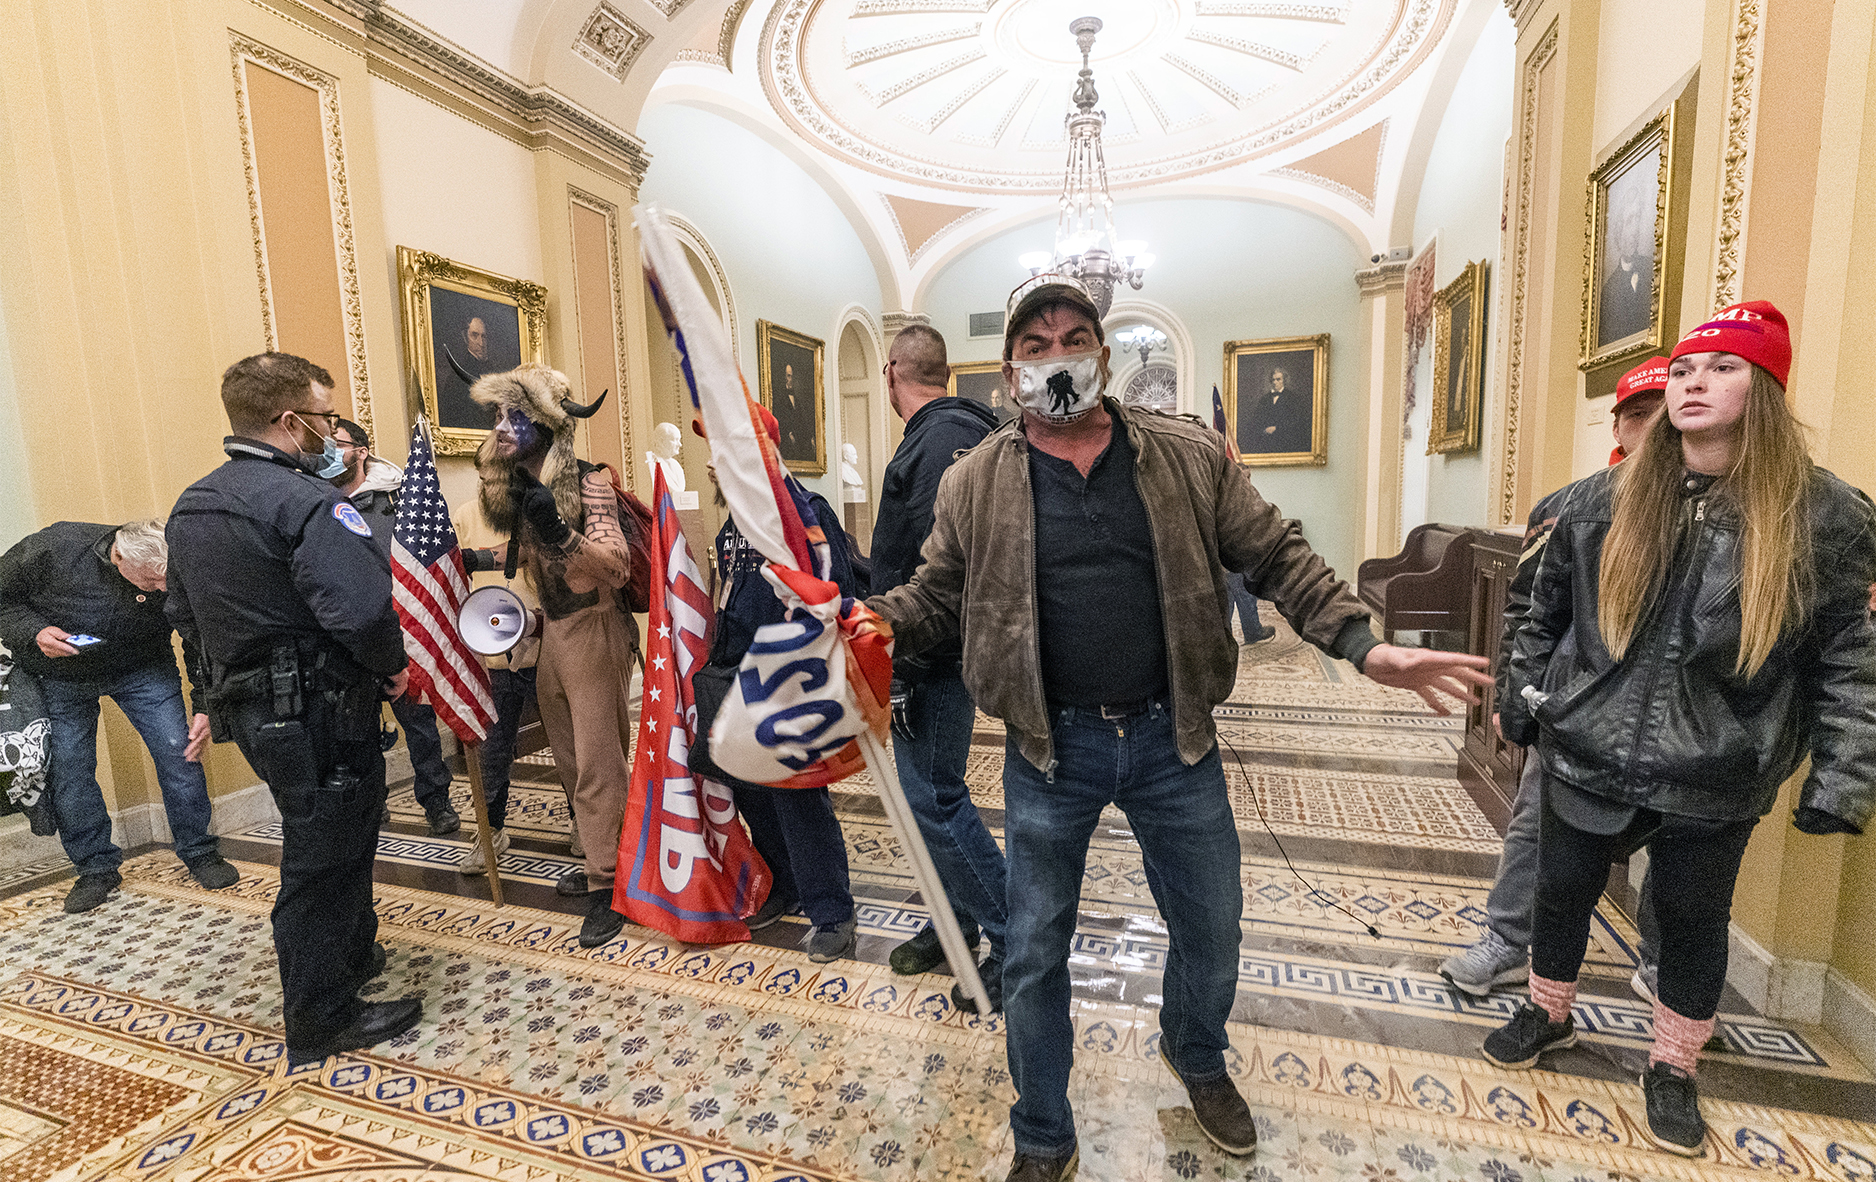 House approves legislation to form Jan. 6 bipartisan commission to investigate Capitol riot